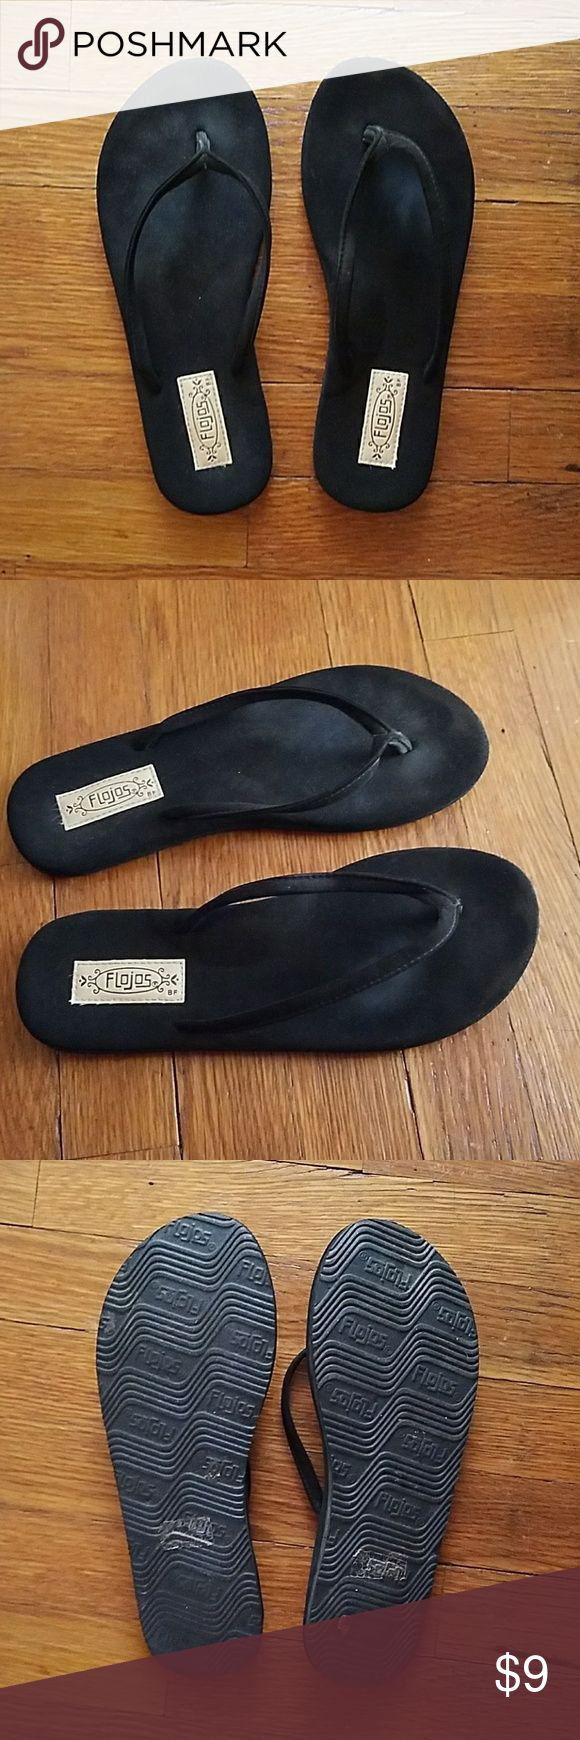 Flojo Black Sandals! Only worn once, black flojo sandals! great condition and is a size 6 women :) 🍂 Tilly's Shoes Sandals